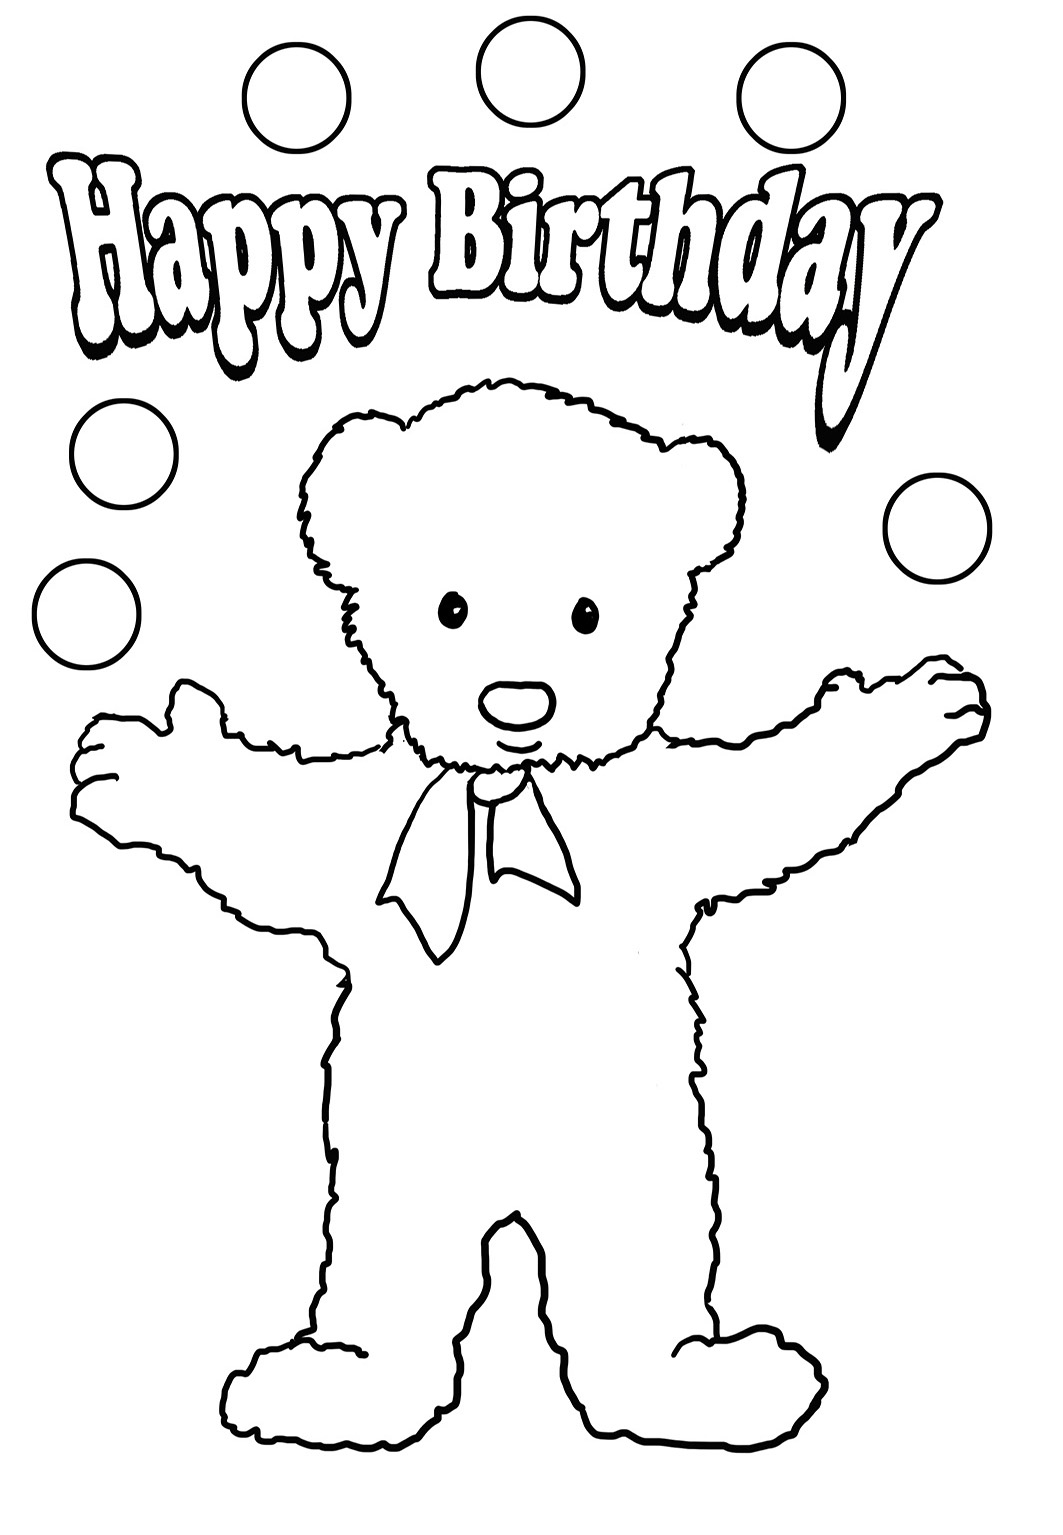 Birthday Coloring Pages on clothes off